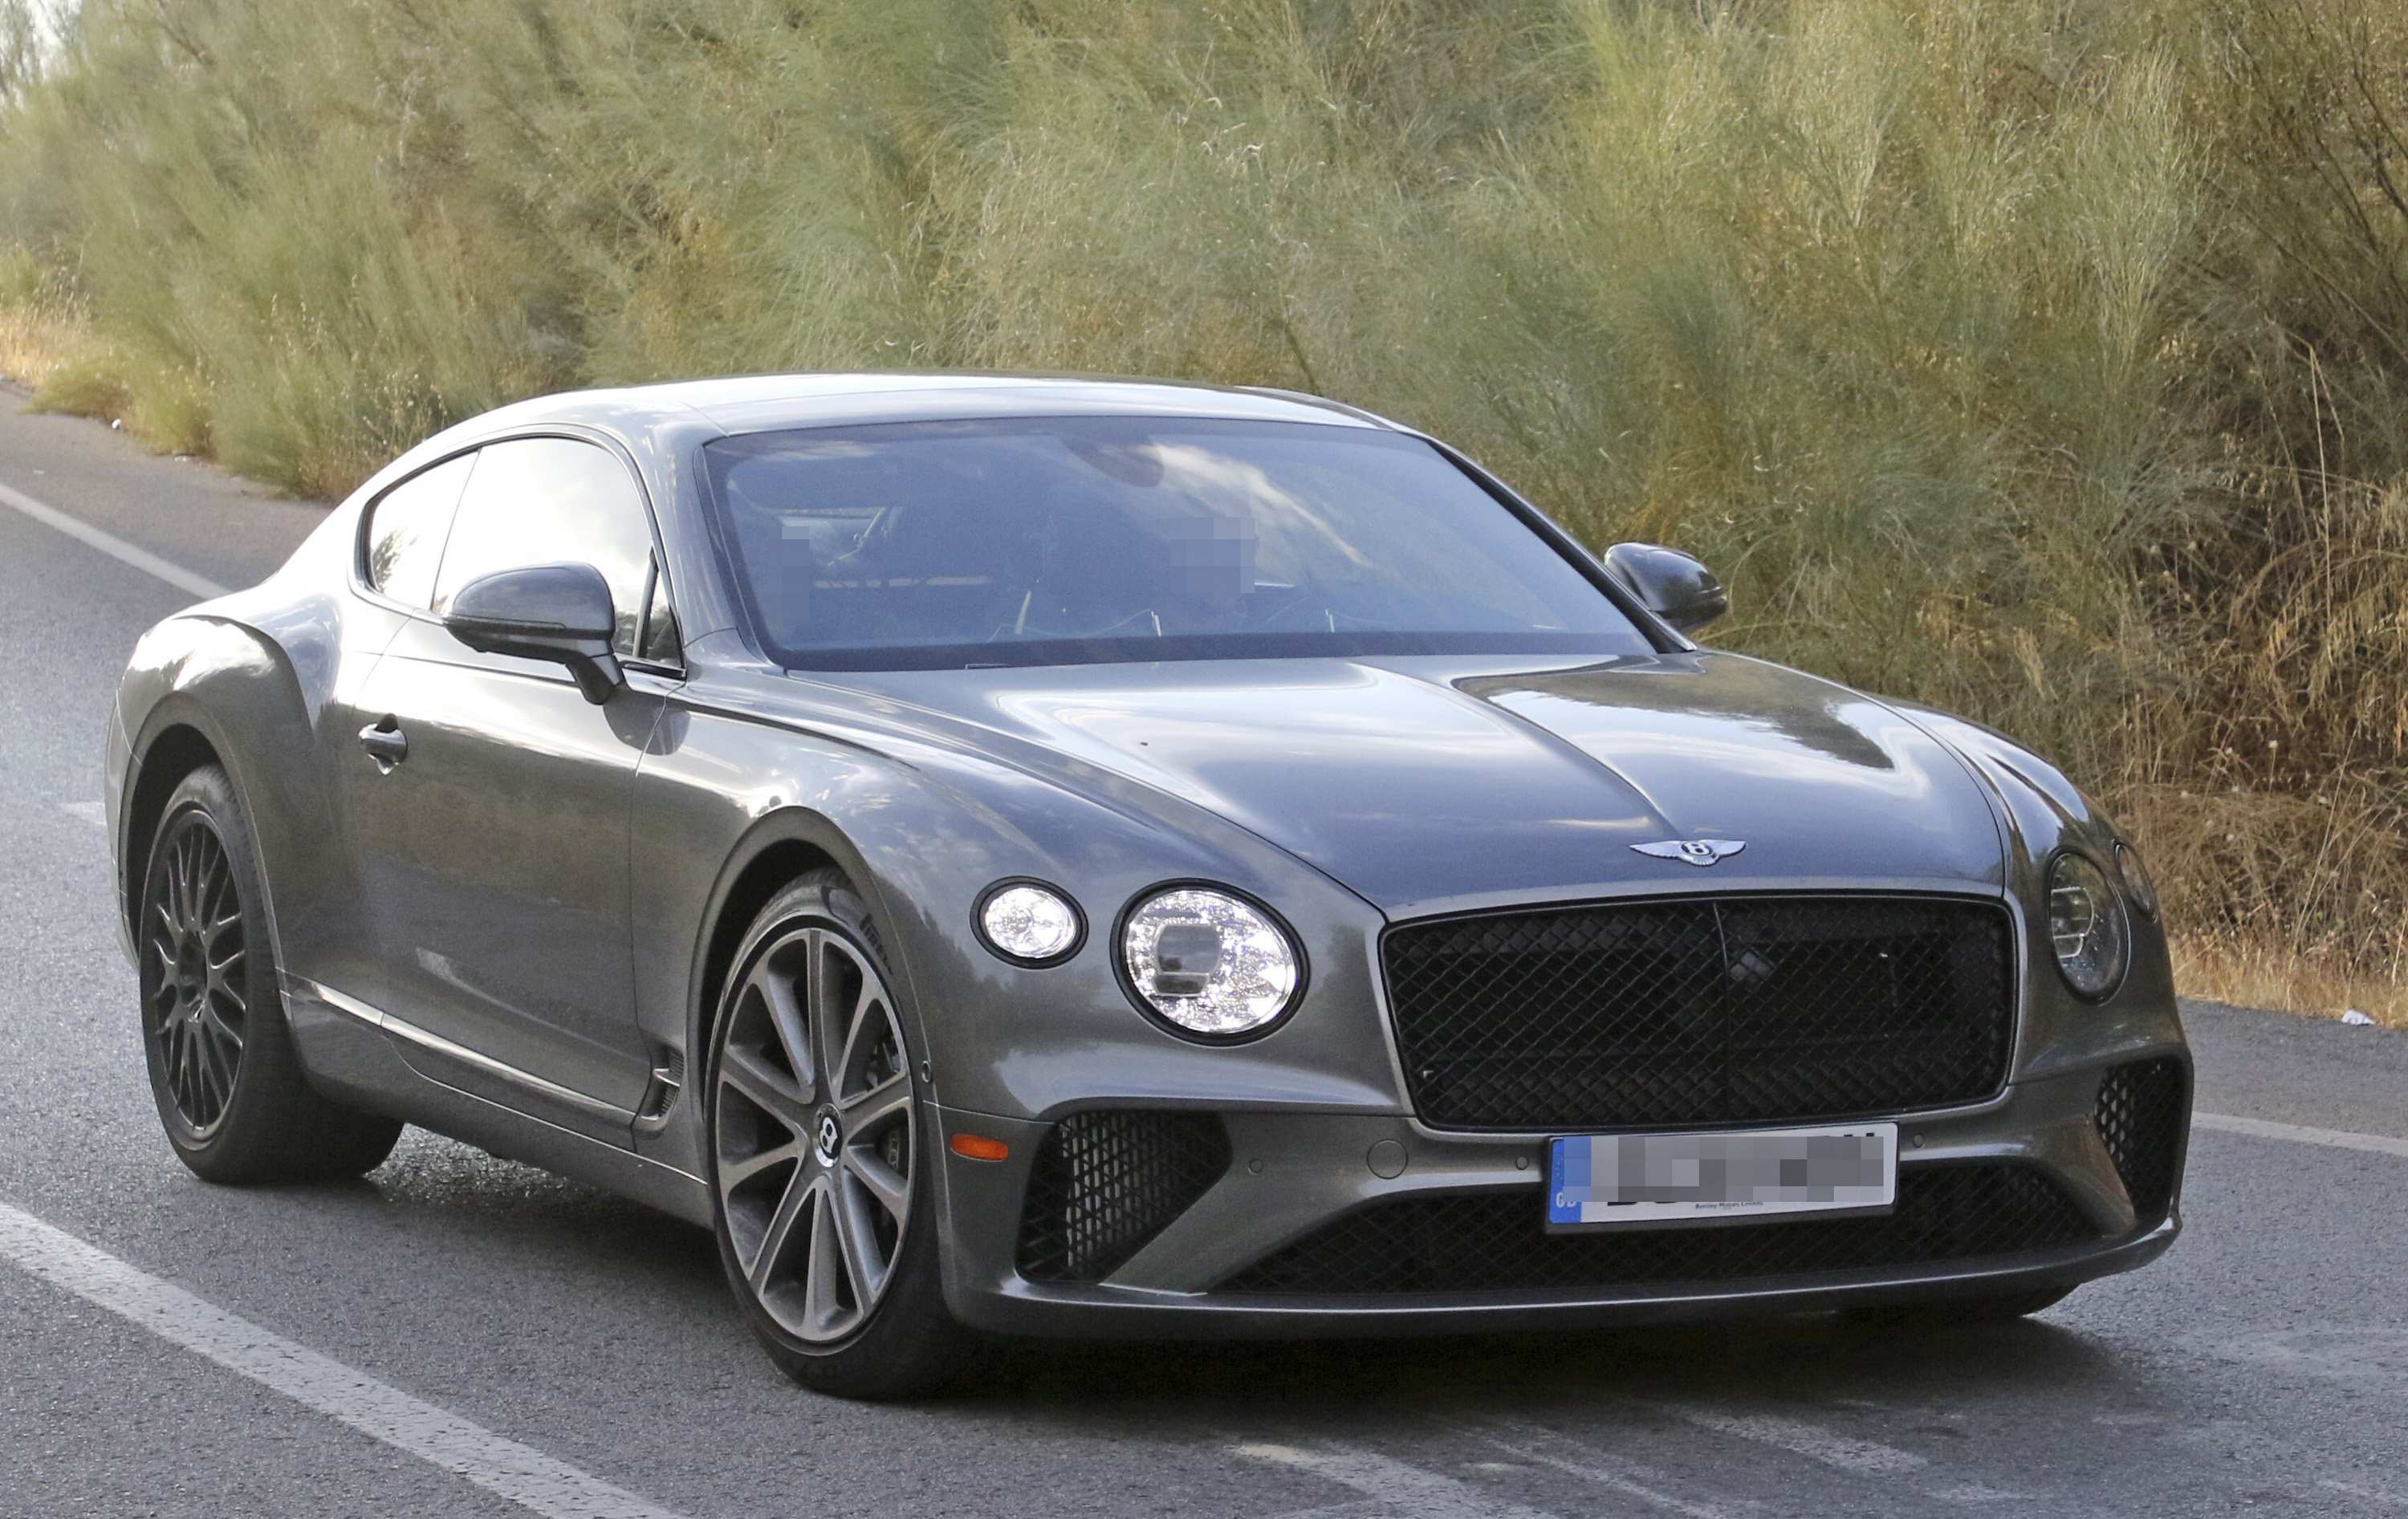 79 All New 2019 Bentley Supersport Images